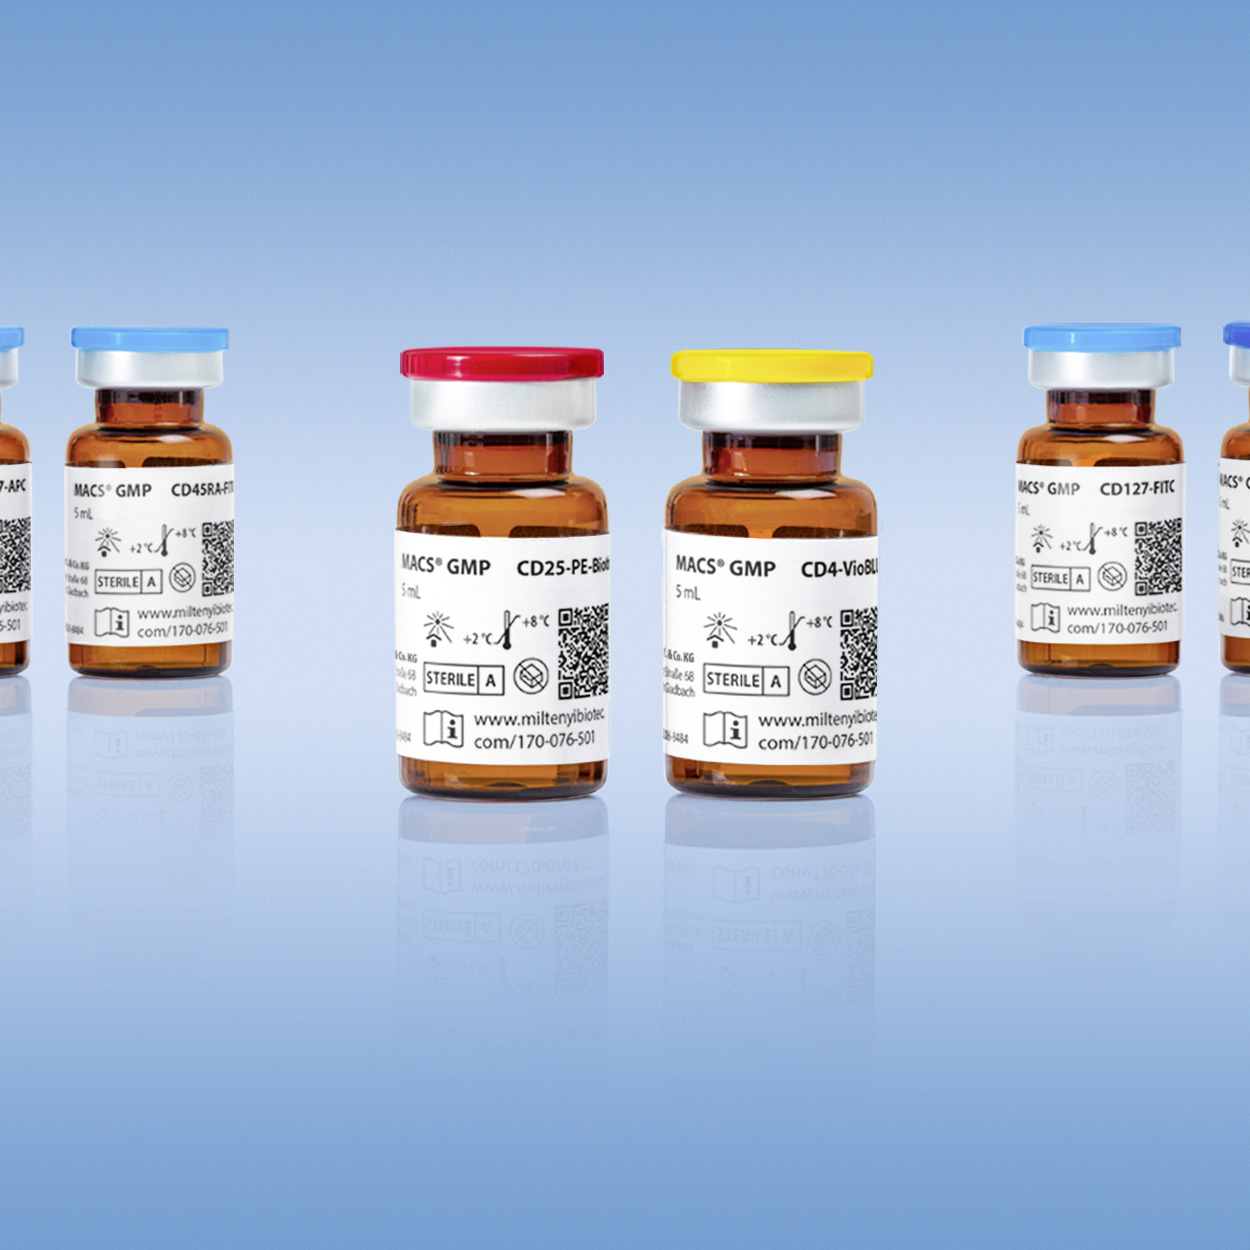 MACS GMP Cell Labeling Reagents